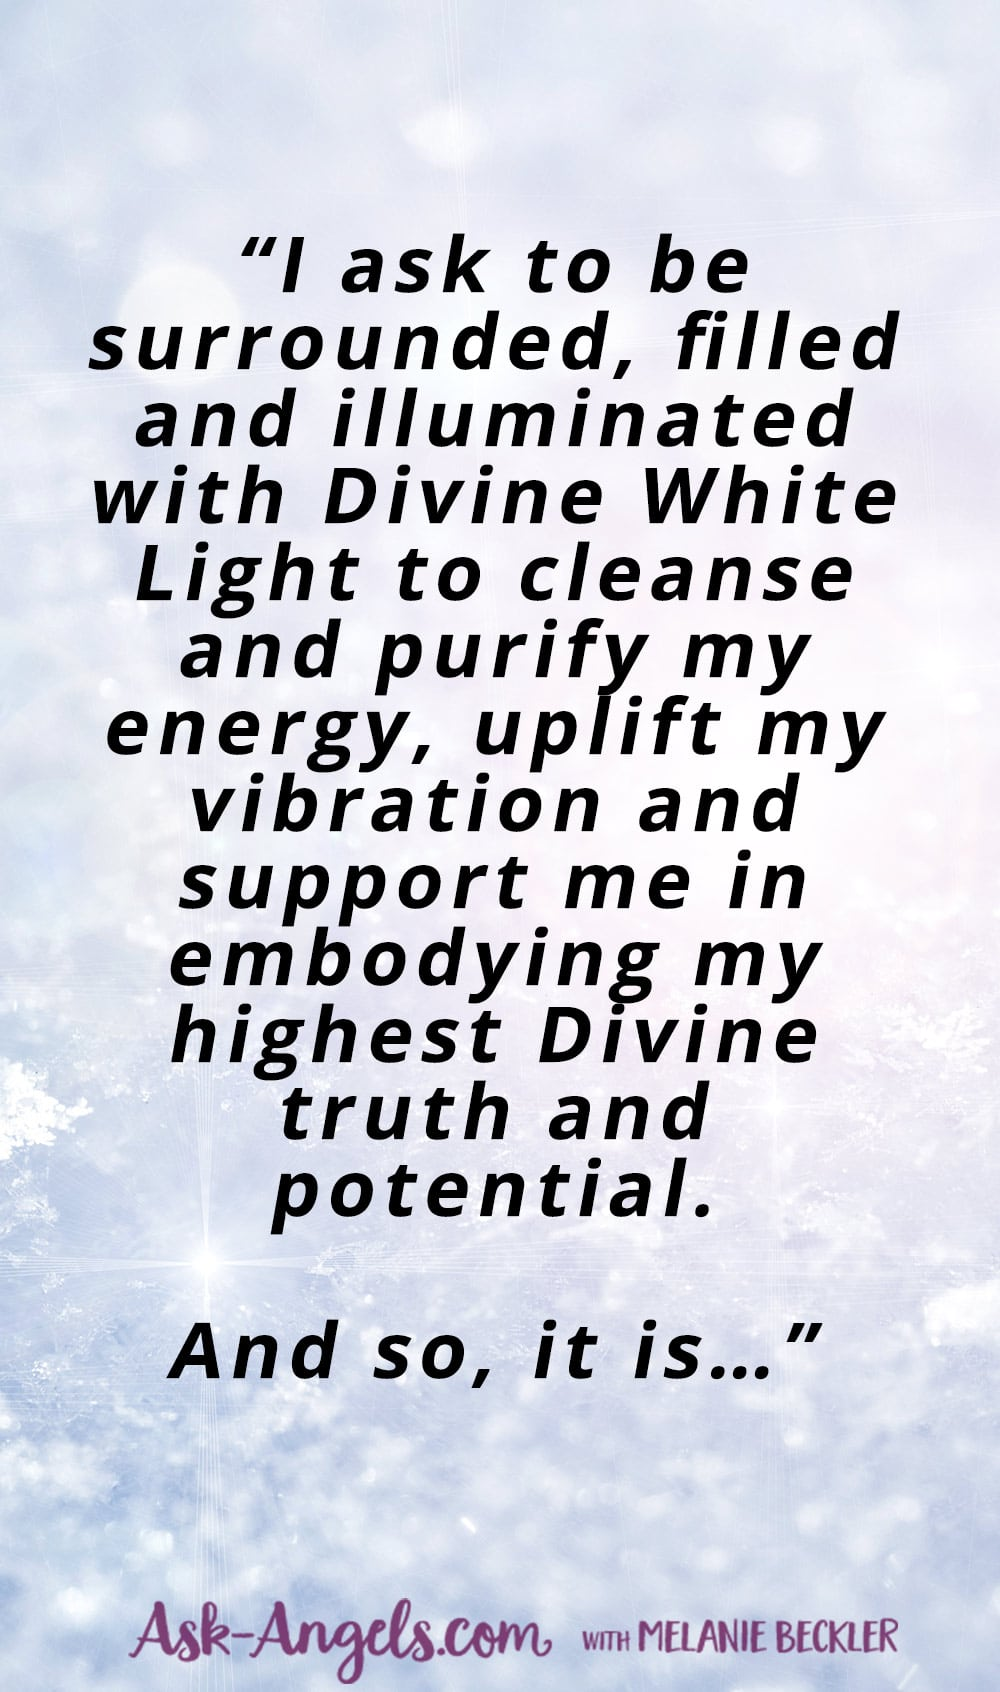 This is a short excerpt from a beautiful White Light Prayer for peace, healing, light and love. Click through to read this full prayer.